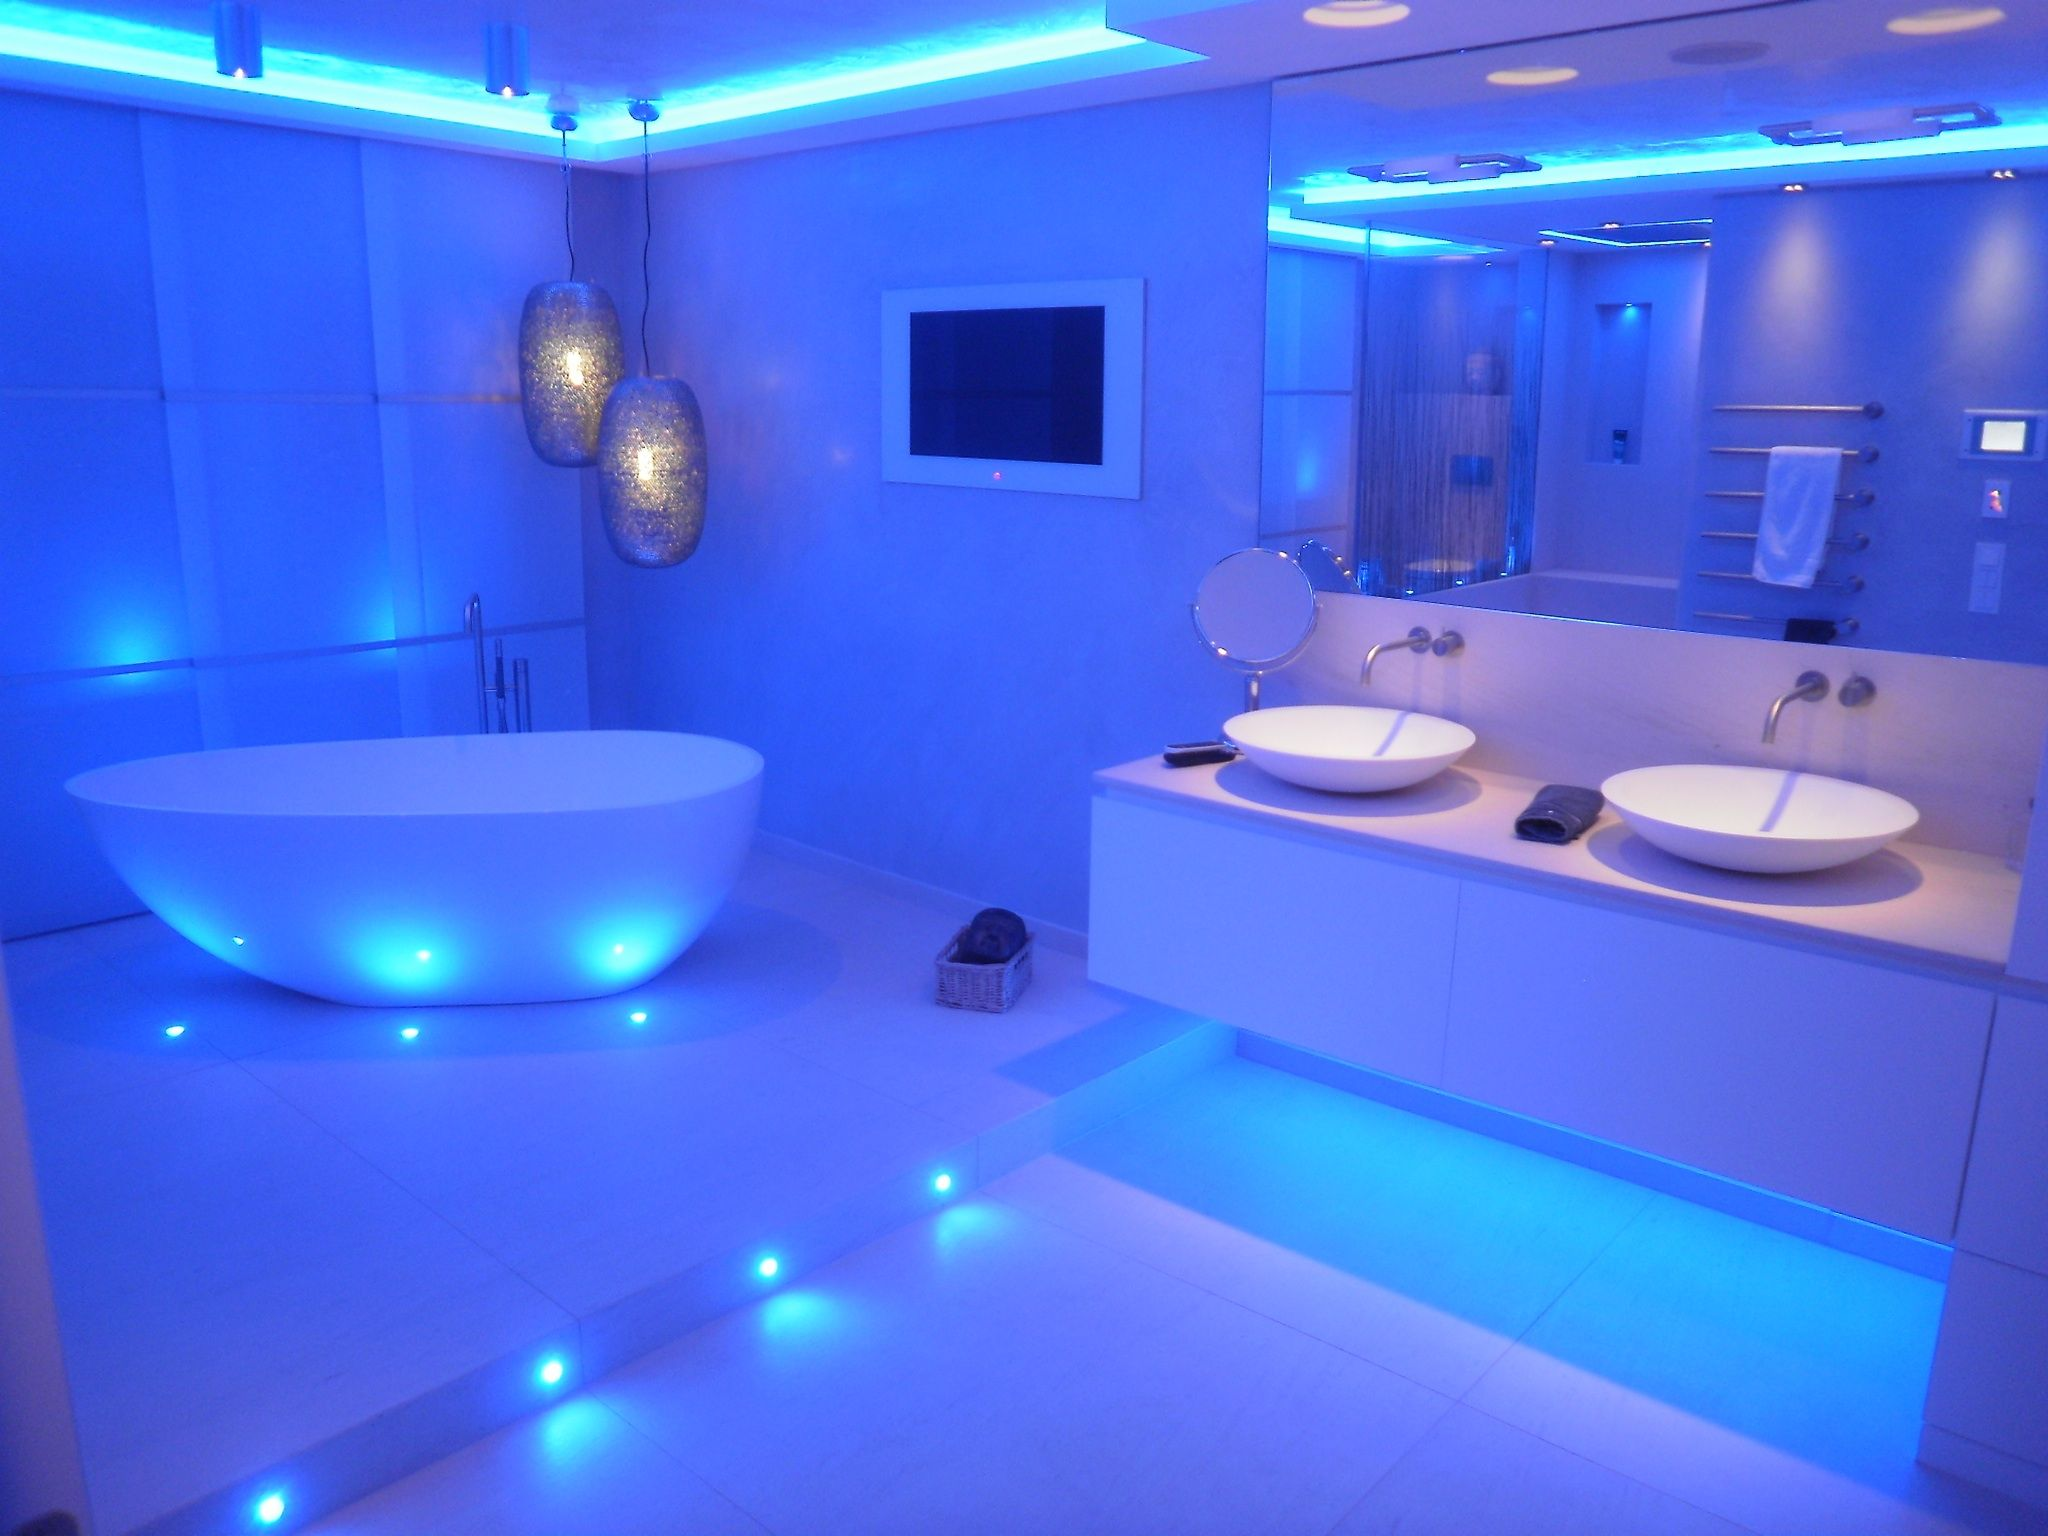 Lichtdesign im Bad | Blooper | Pinterest | Contemporary bathrooms ...